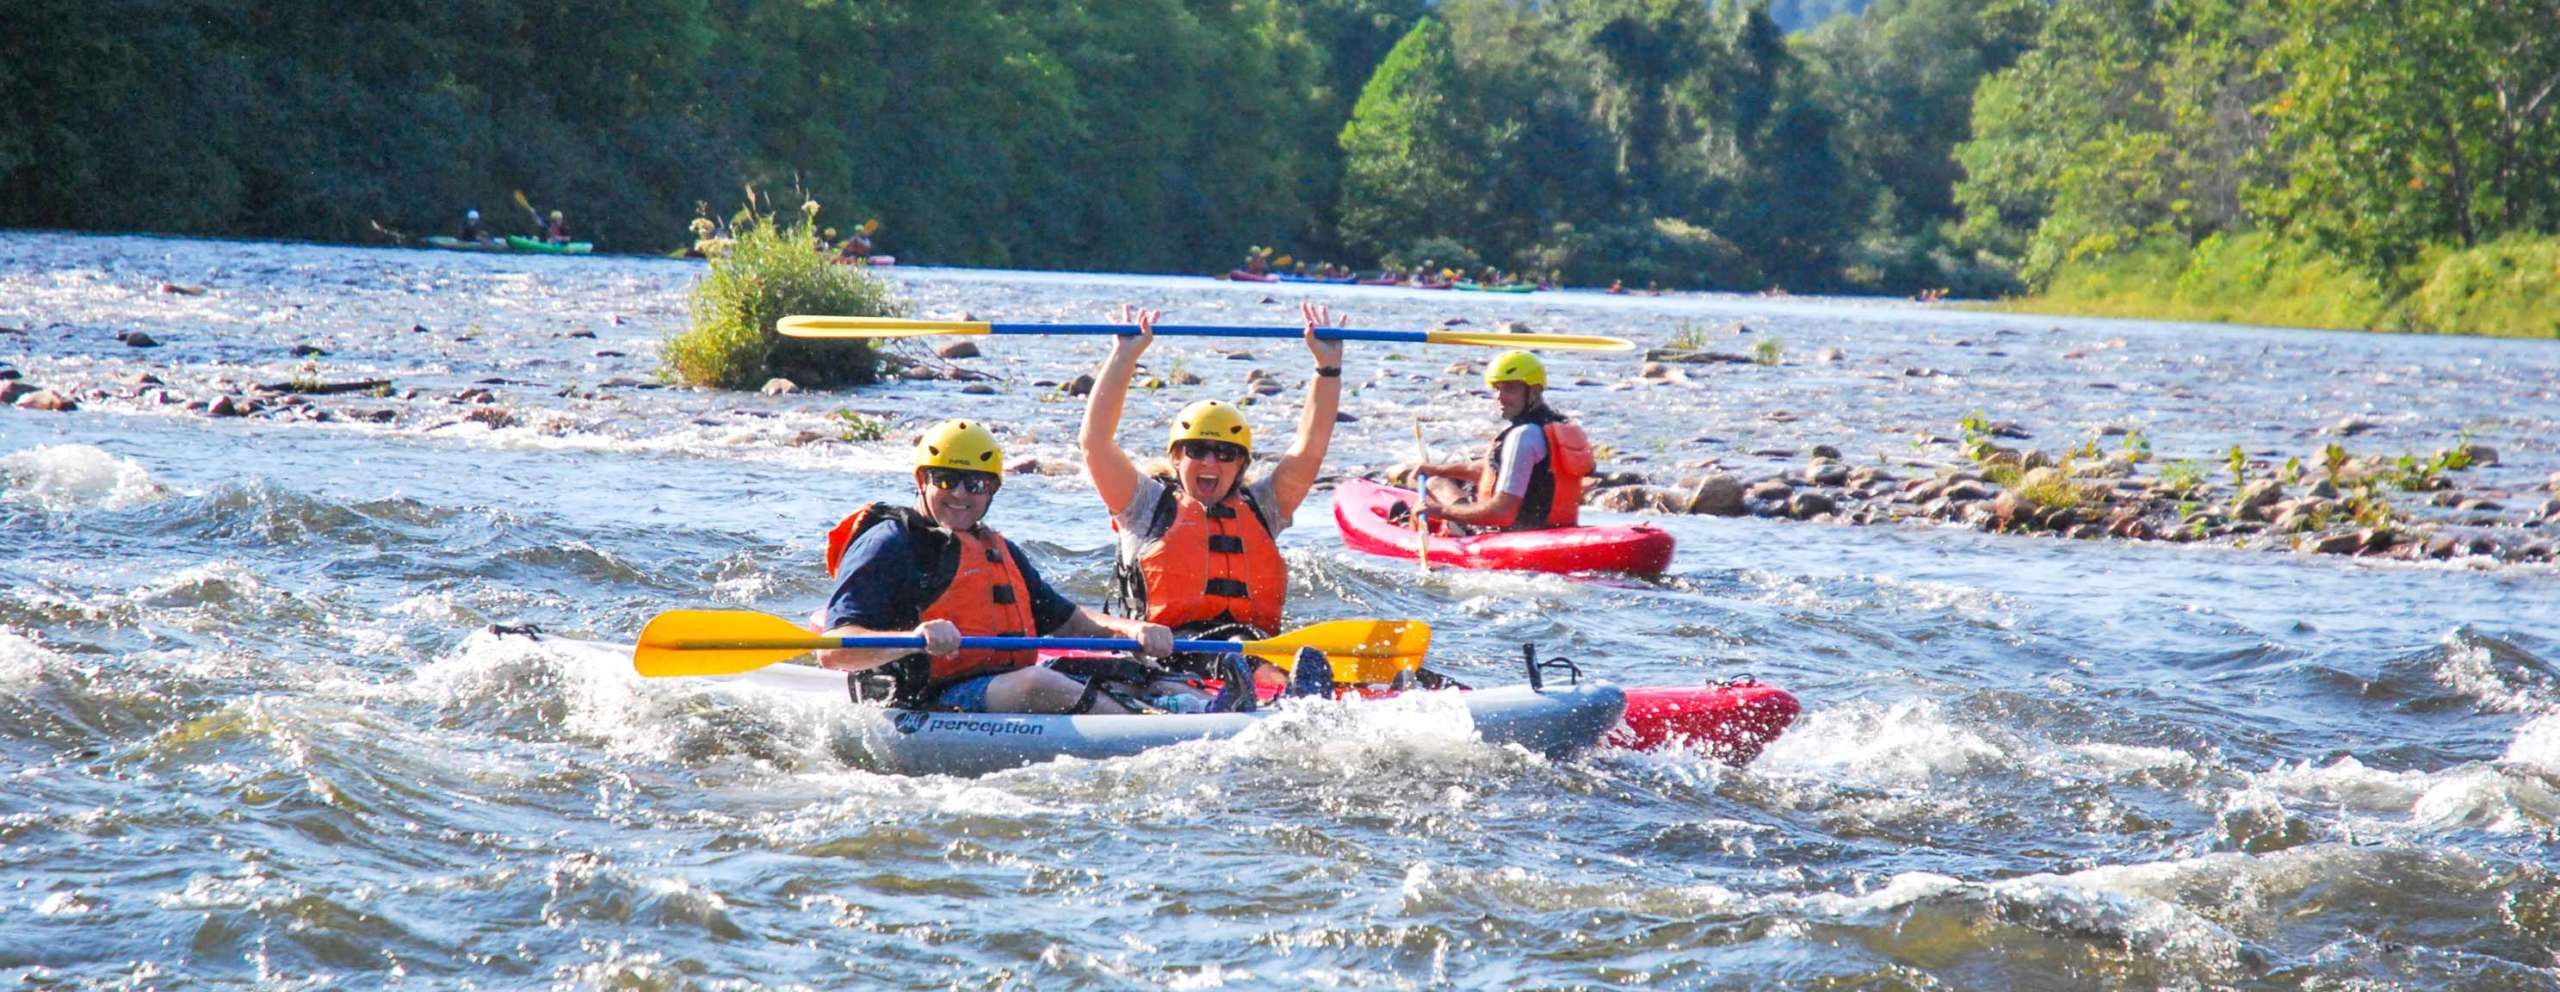 Group of kayakers on the river having fun